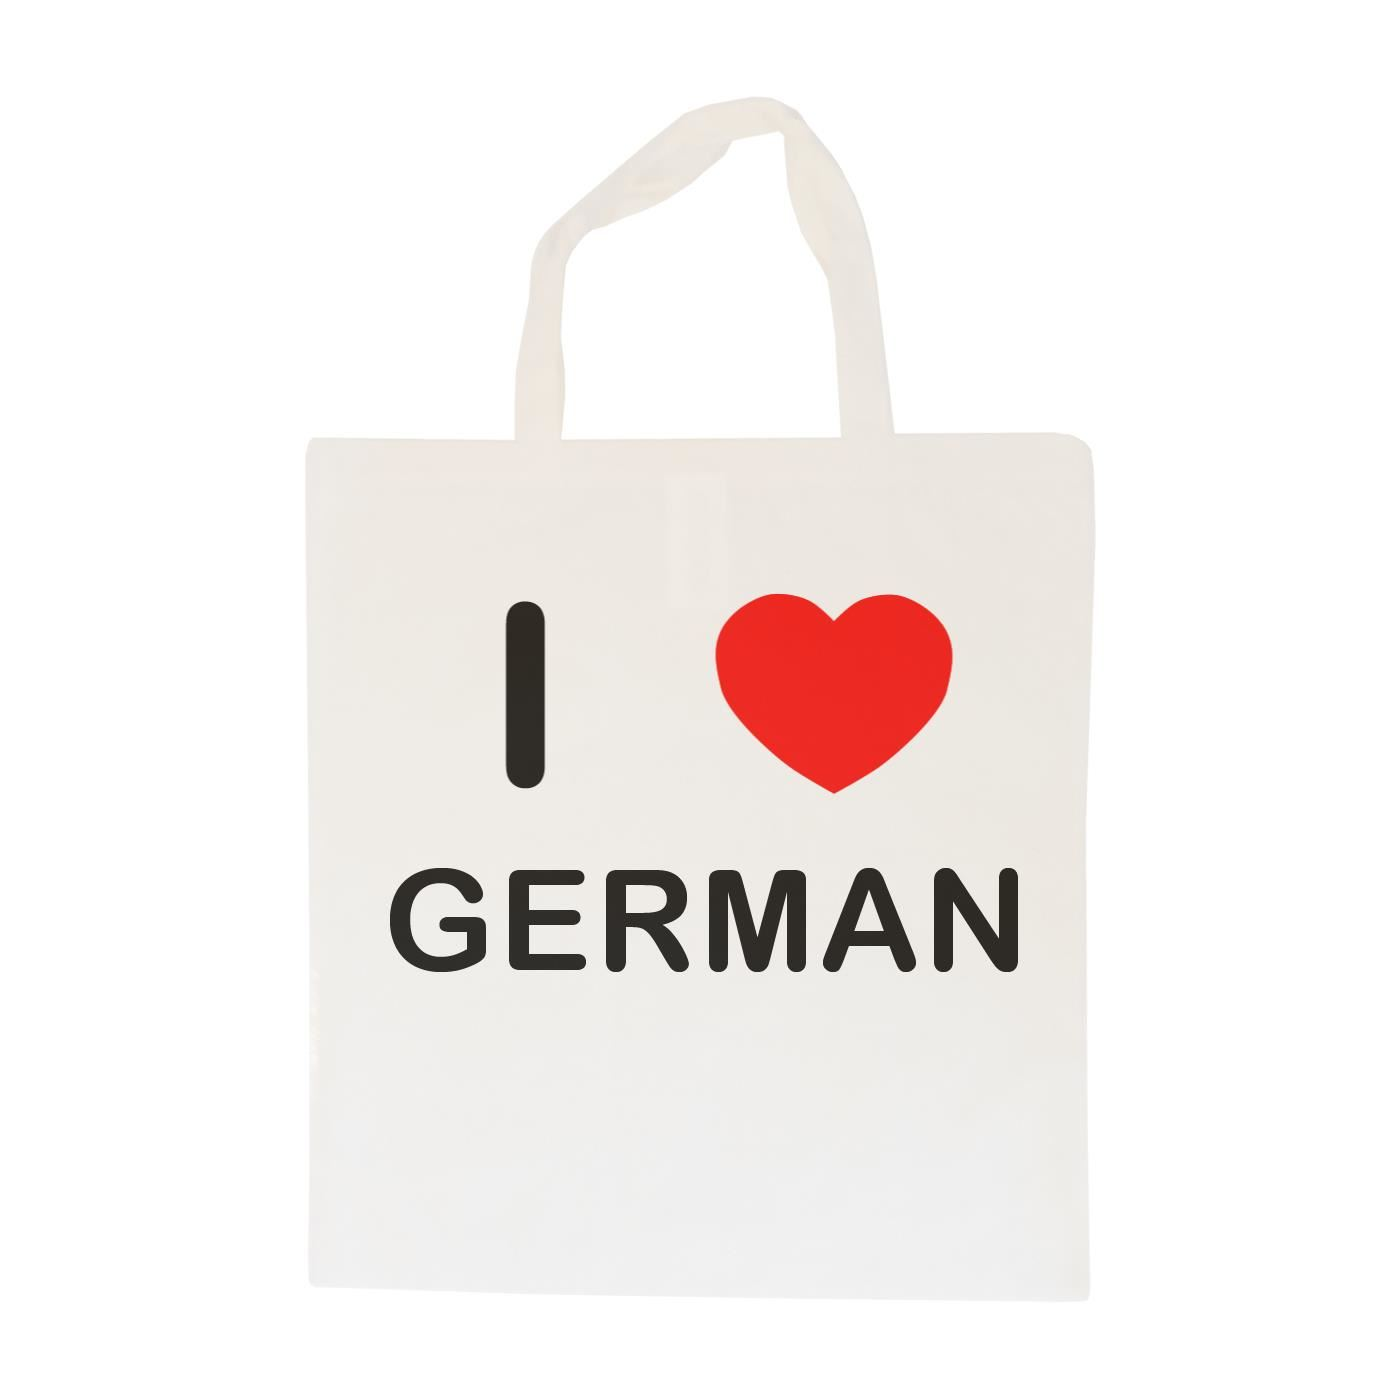 I Love German - Cotton Bag | Size choice Tote, Shopper or Sling